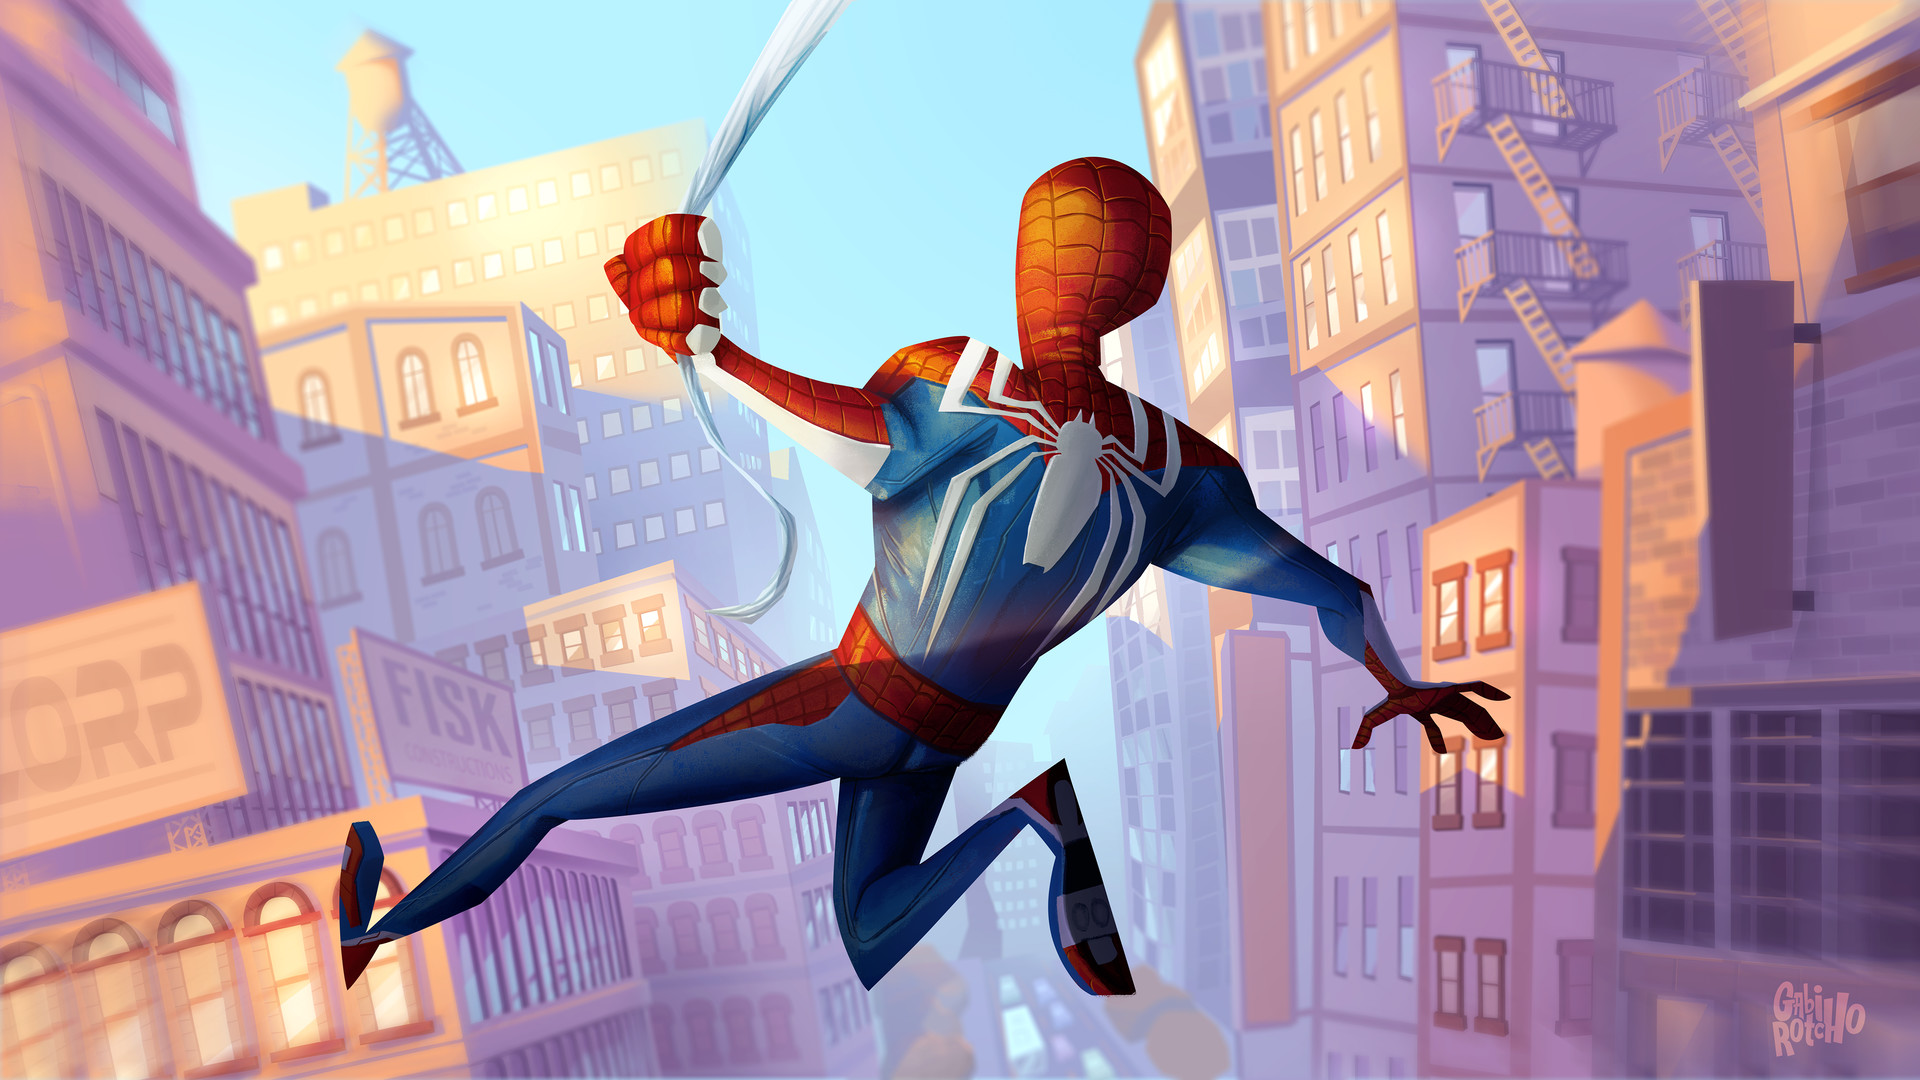 640x1136 Spider Man Ps4 Fanart Iphone 5 5c 5s Se Ipod Touch Hd 4k